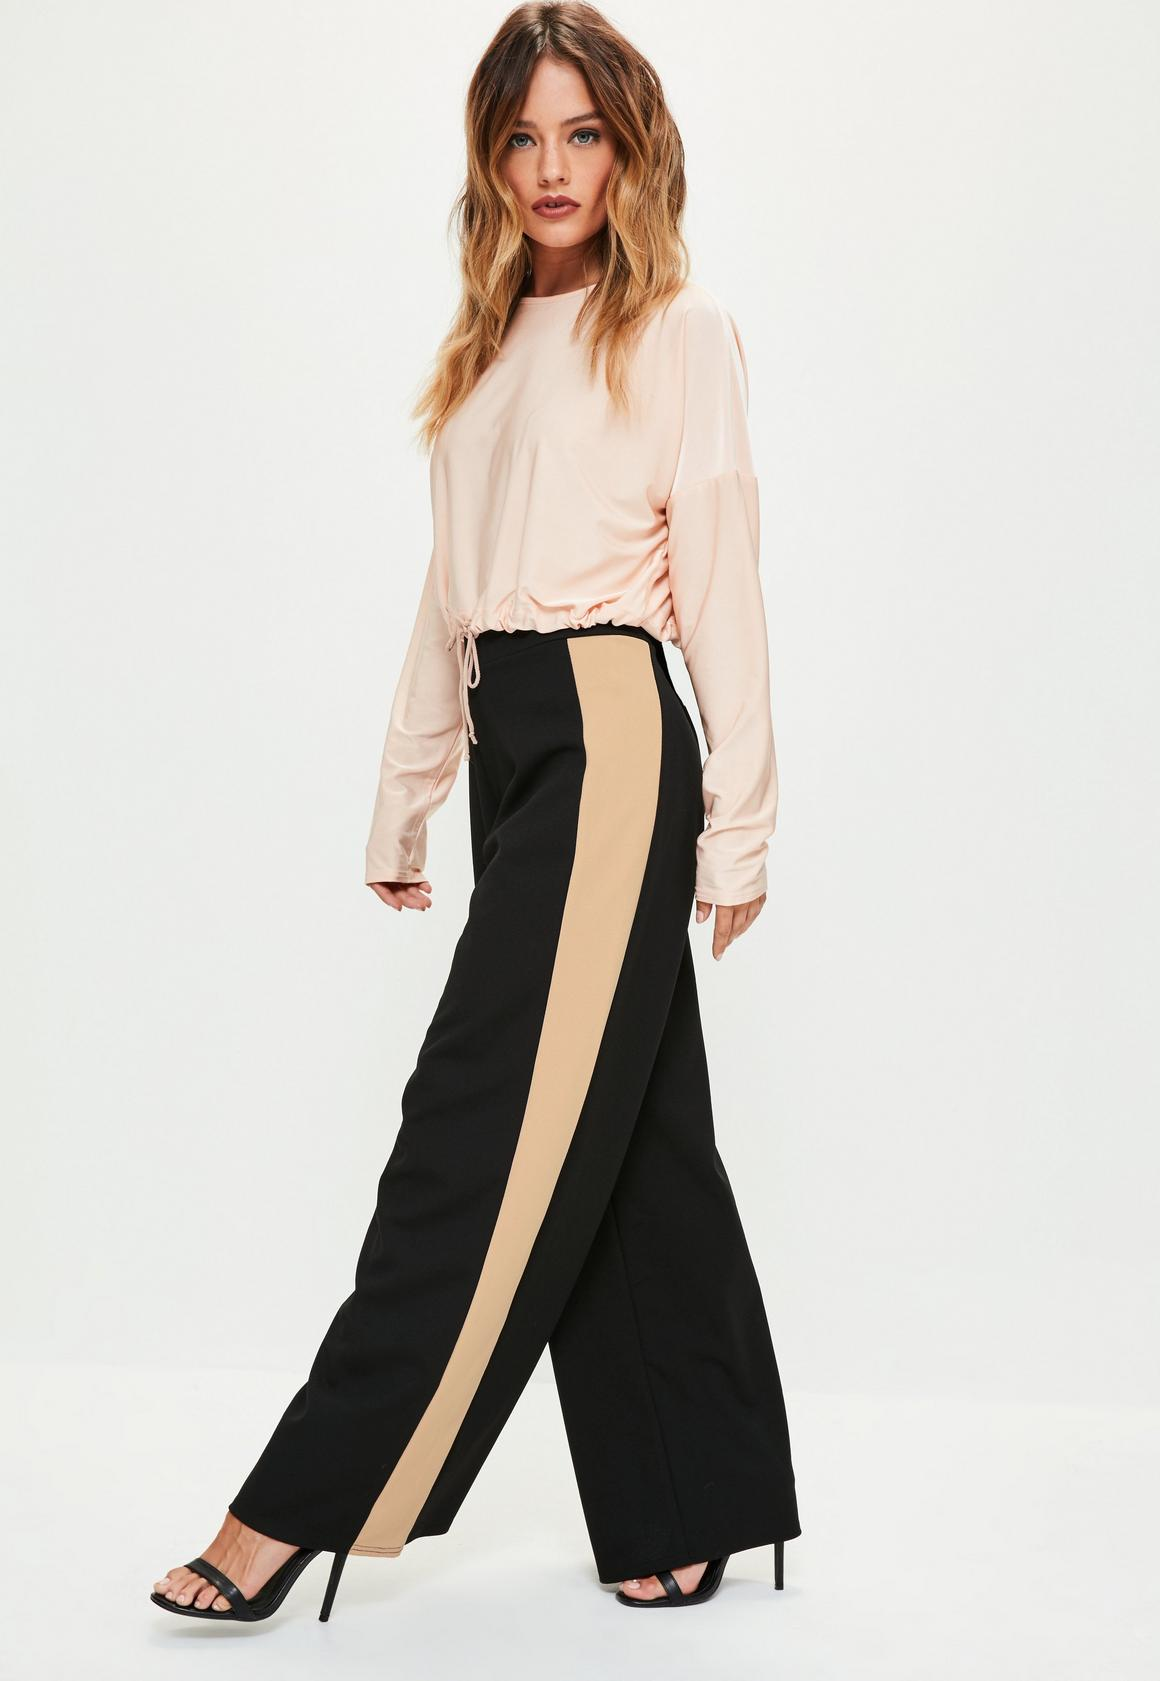 Petite Black Stripe Panel Wide Leg Pants - Missguided